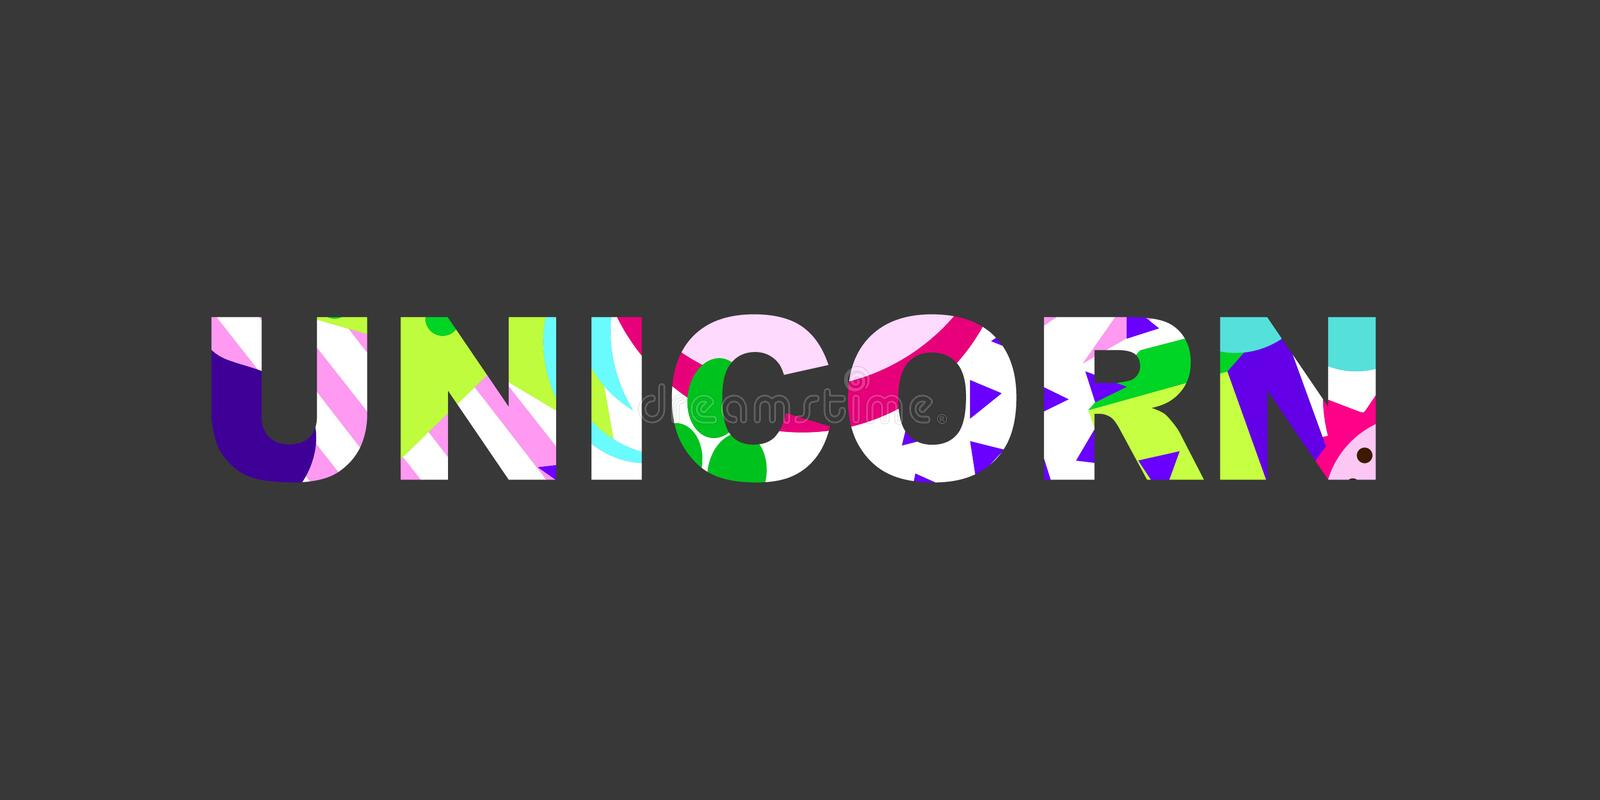 Textural word. Unicorn - inspirational word with a unique bright texture. Good for any printed products, Internet content. Vector illustration vector illustration